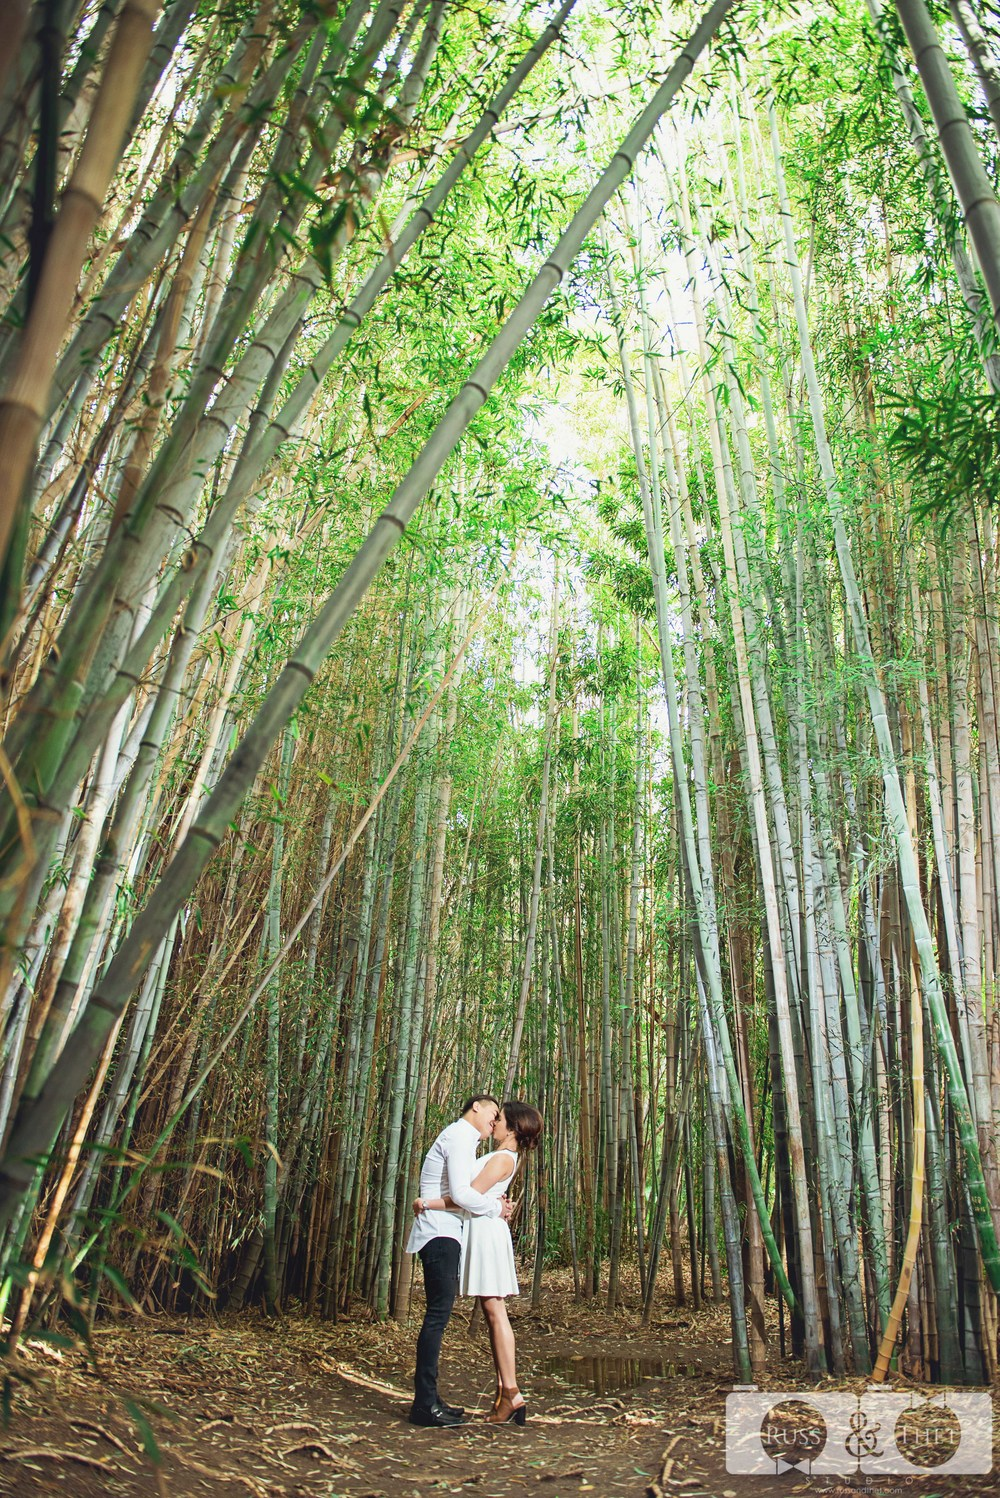 LA-arboretum-engagement-session-13.JPG